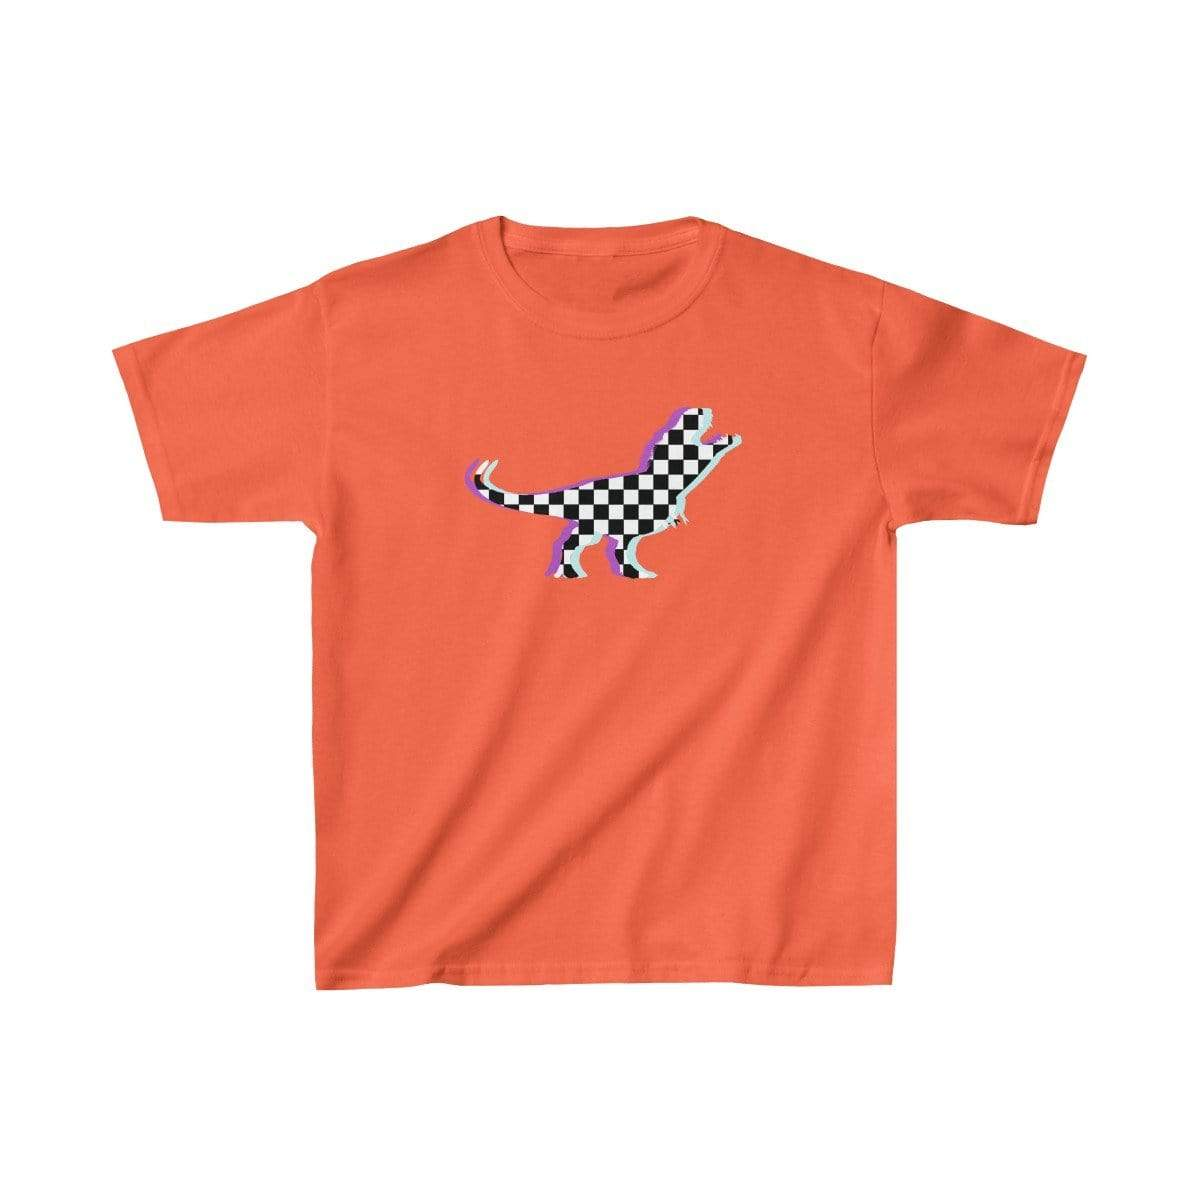 Printify Kids clothes Orange / XS Glitch Aesthetic TRex Checker T-Shirt Kids